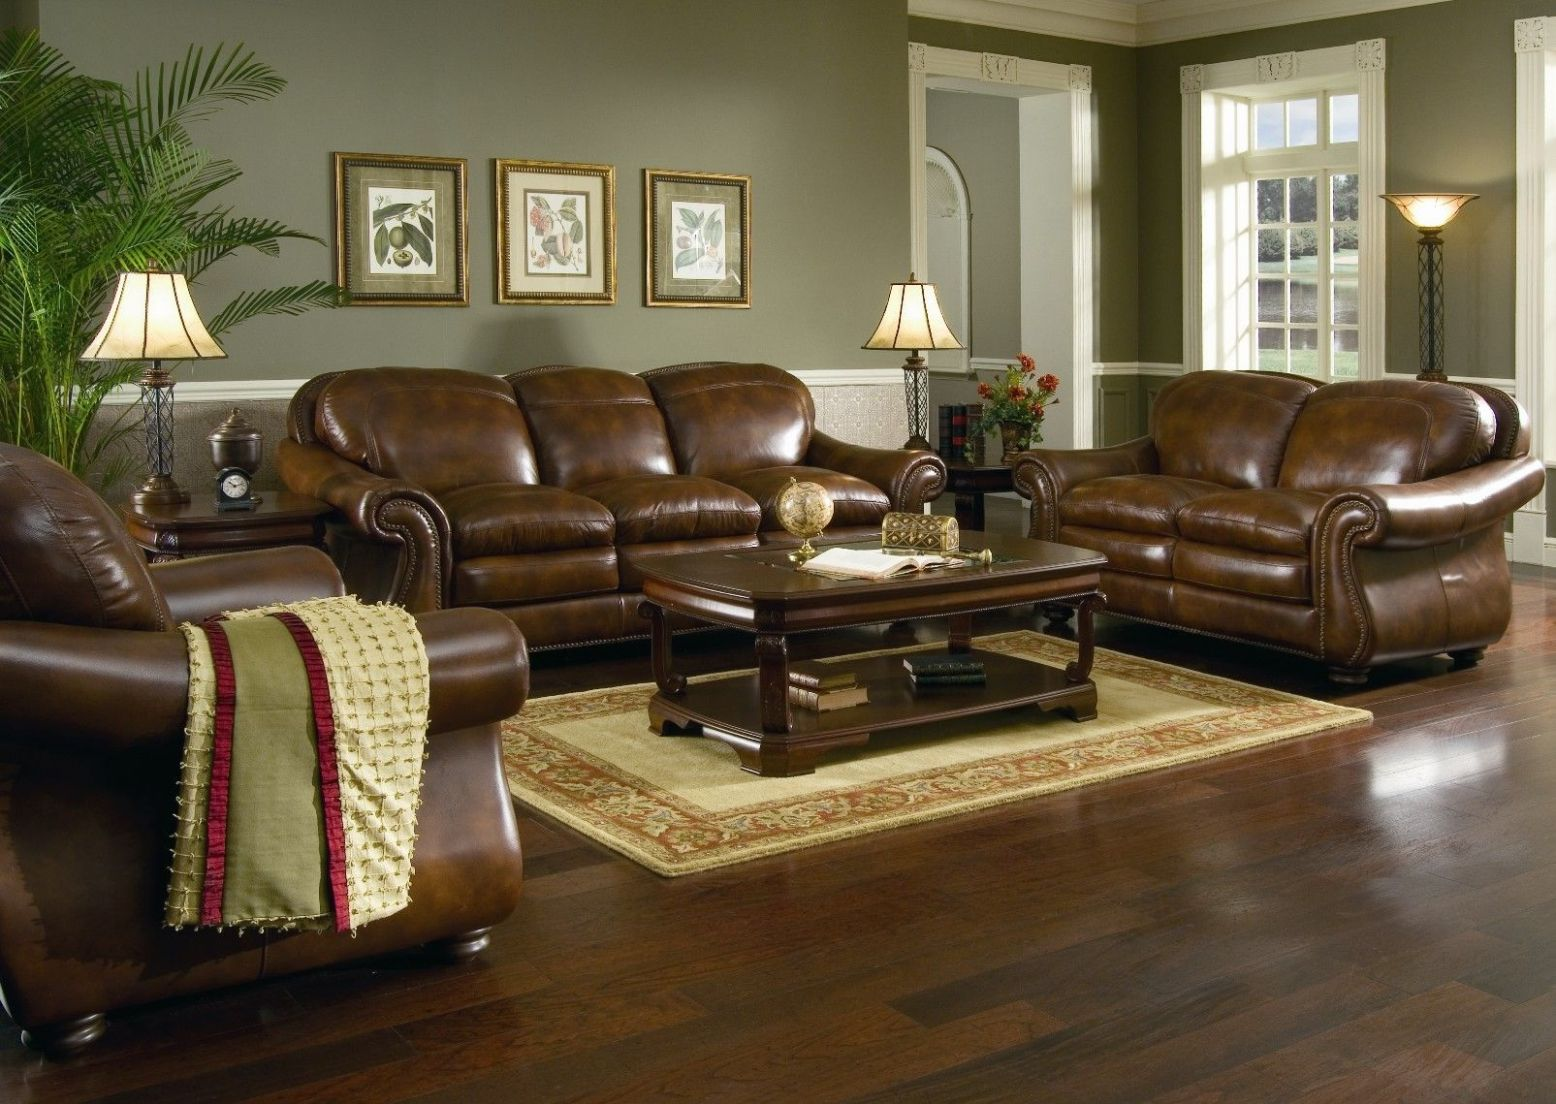 Luxurious Classic Living Room Ideas With Brown Leather Couch And ..